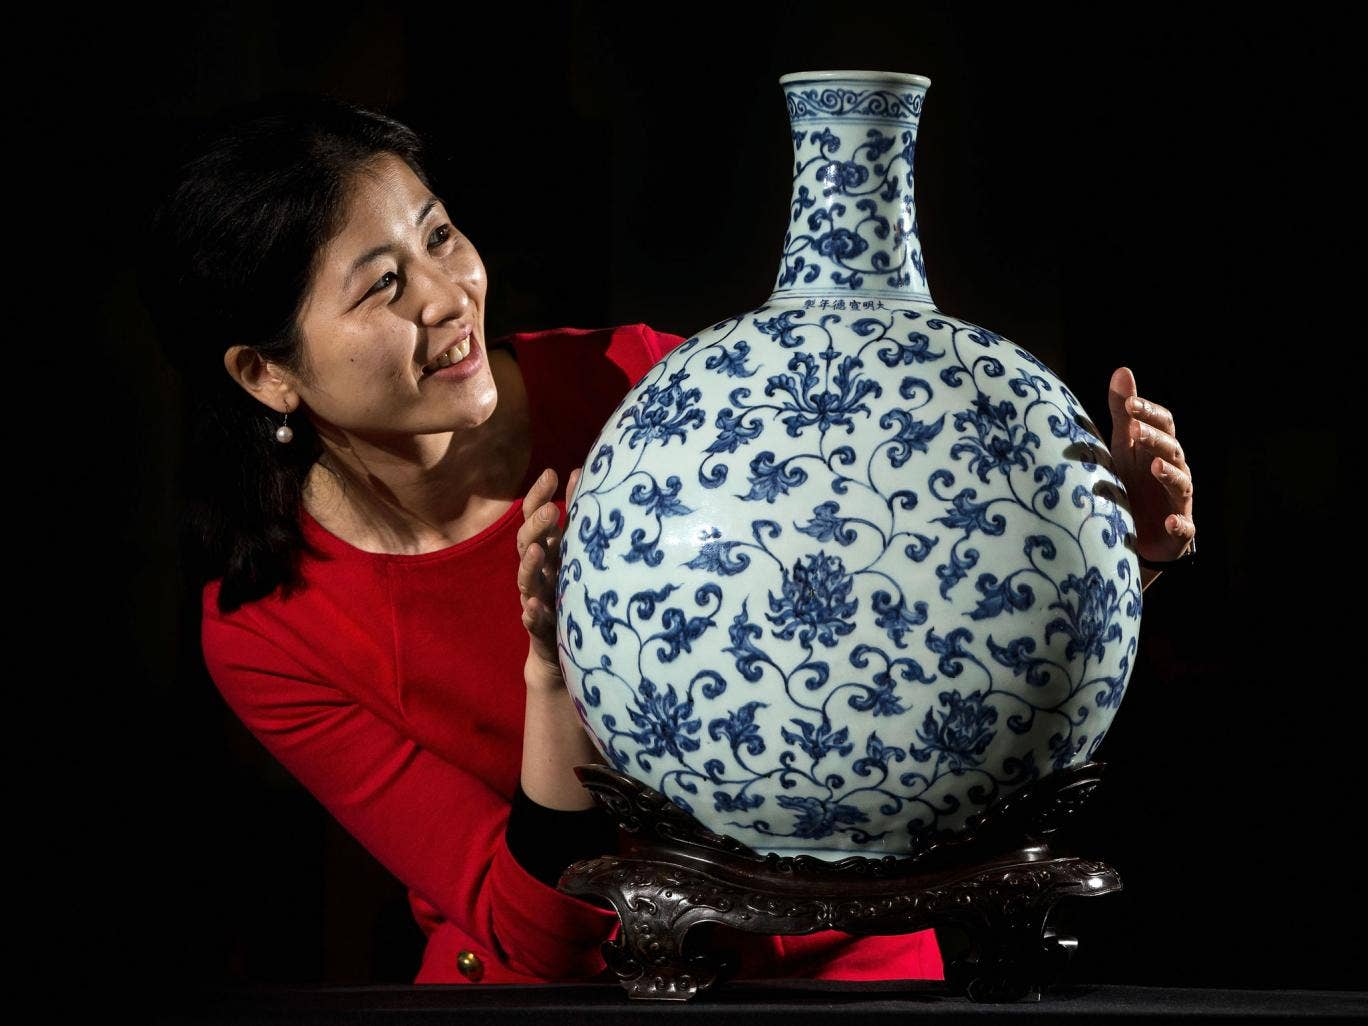 A British Museum employee poses behind a 15th century Imperial Ming Vase, during a photocall at British Museum on January 8, 2014 in London, England. The porcelain vase makes up part of the 'Made in China' exhibition and will tour the country as part of t